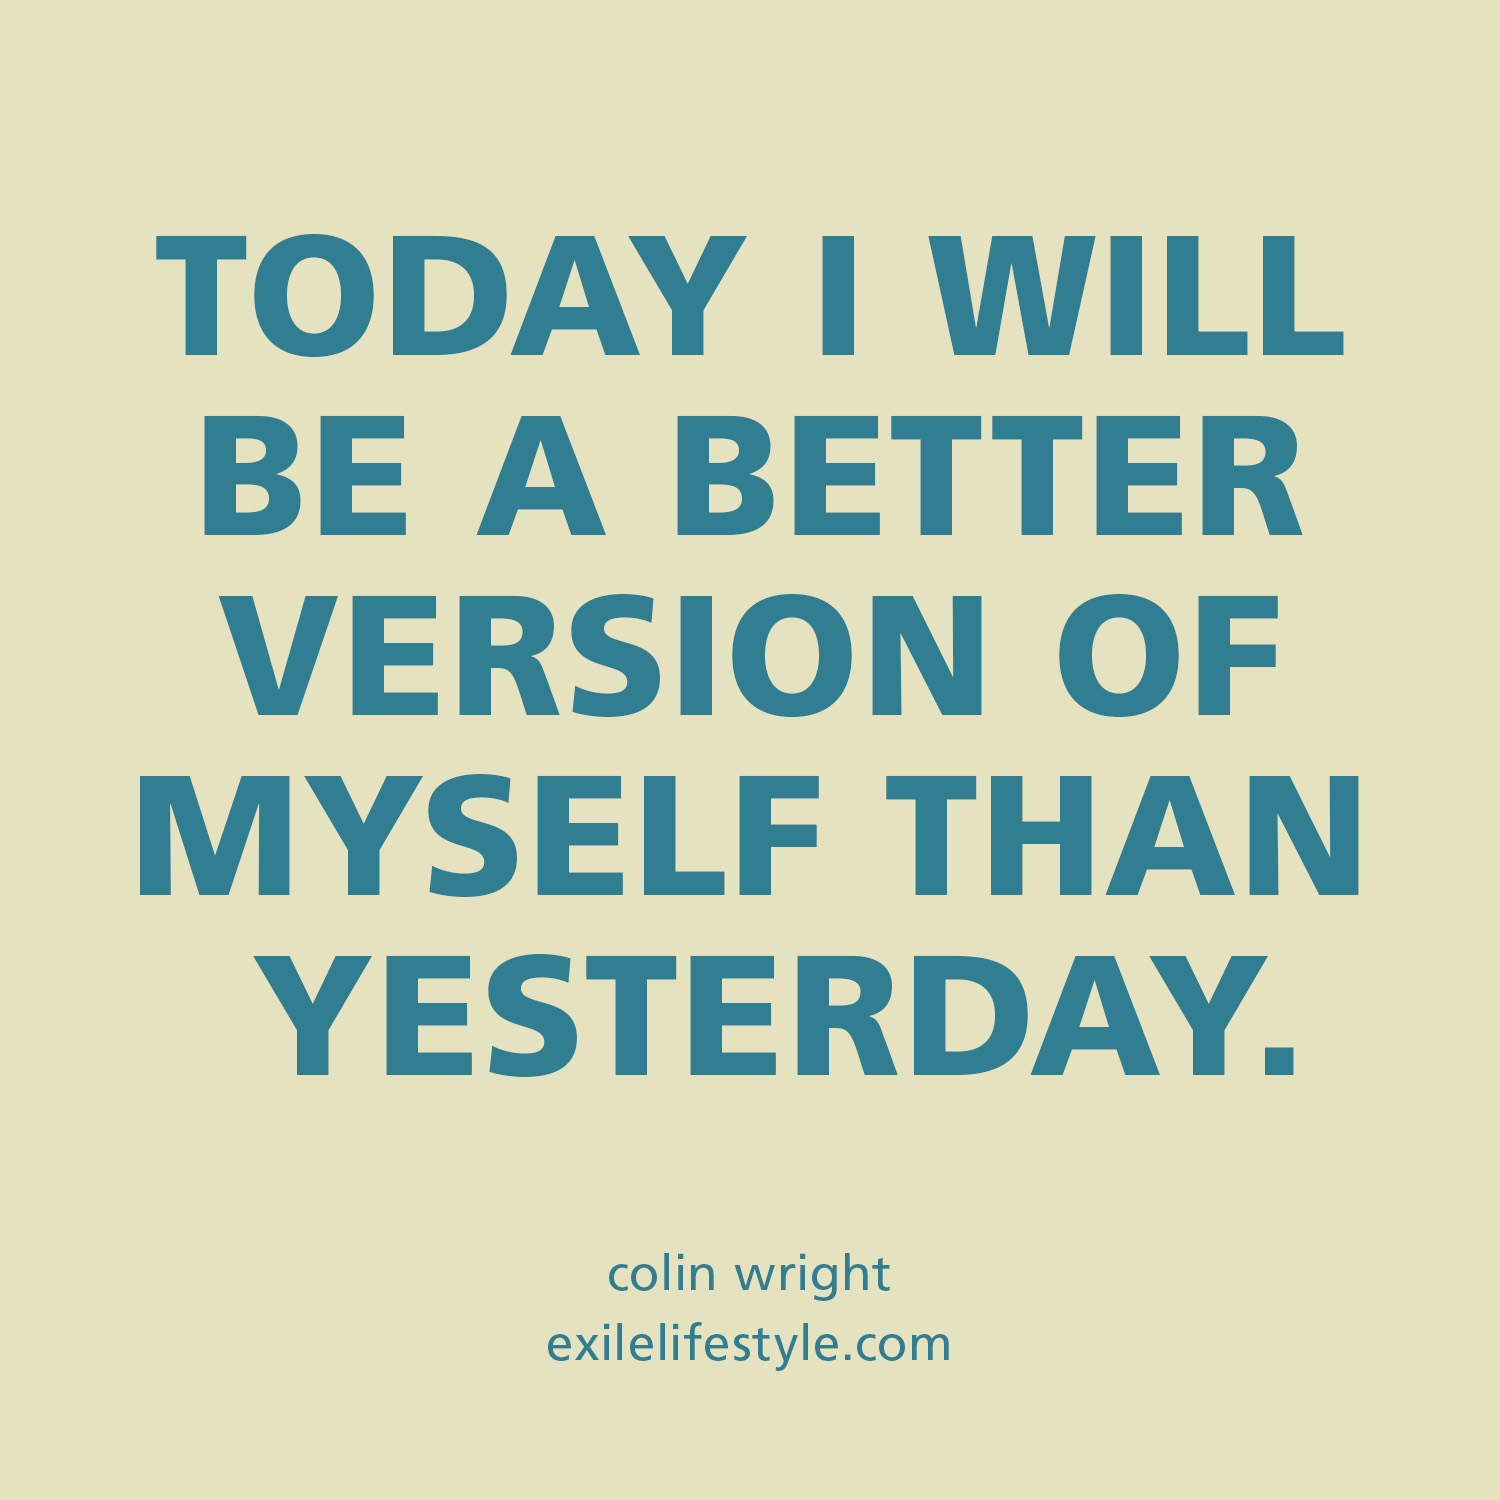 Quotes About Being A Better Person. QuotesGram